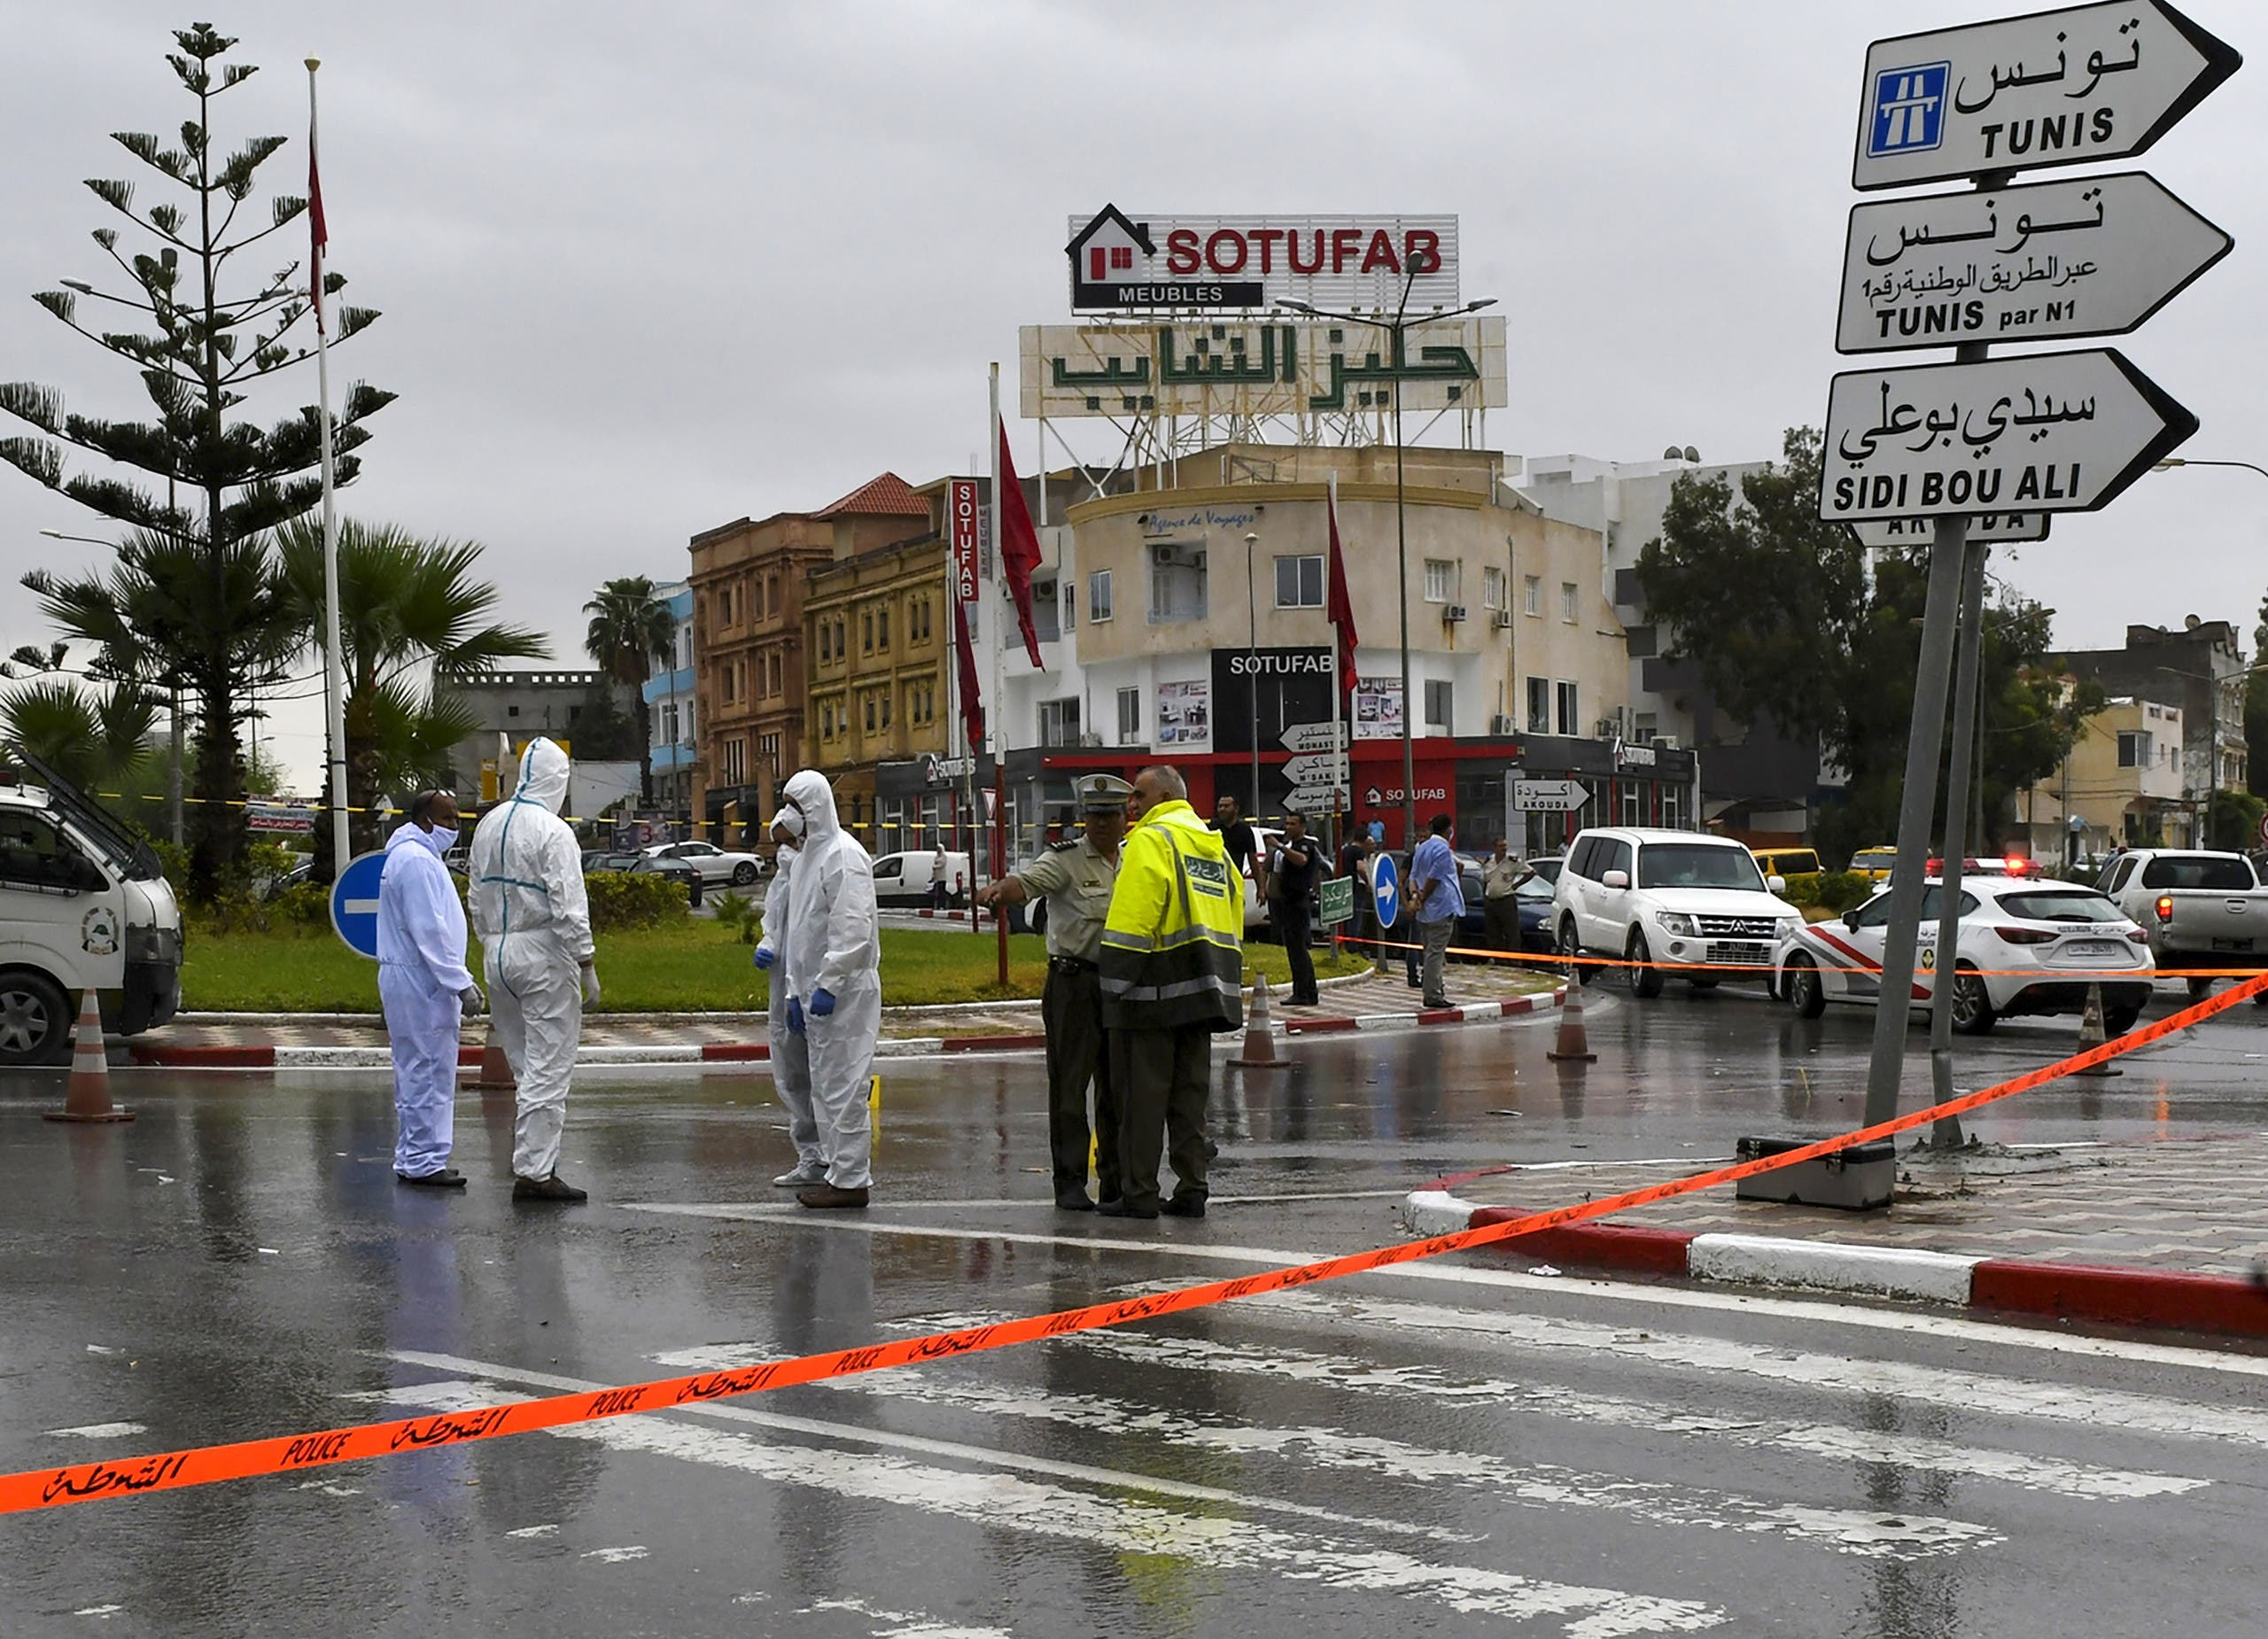 Tunisian forensic police investigate the site of an attack on Tunisian National Guard officers on September 6, 2020, in Sousse, south of the capital Tunis. (File photo)